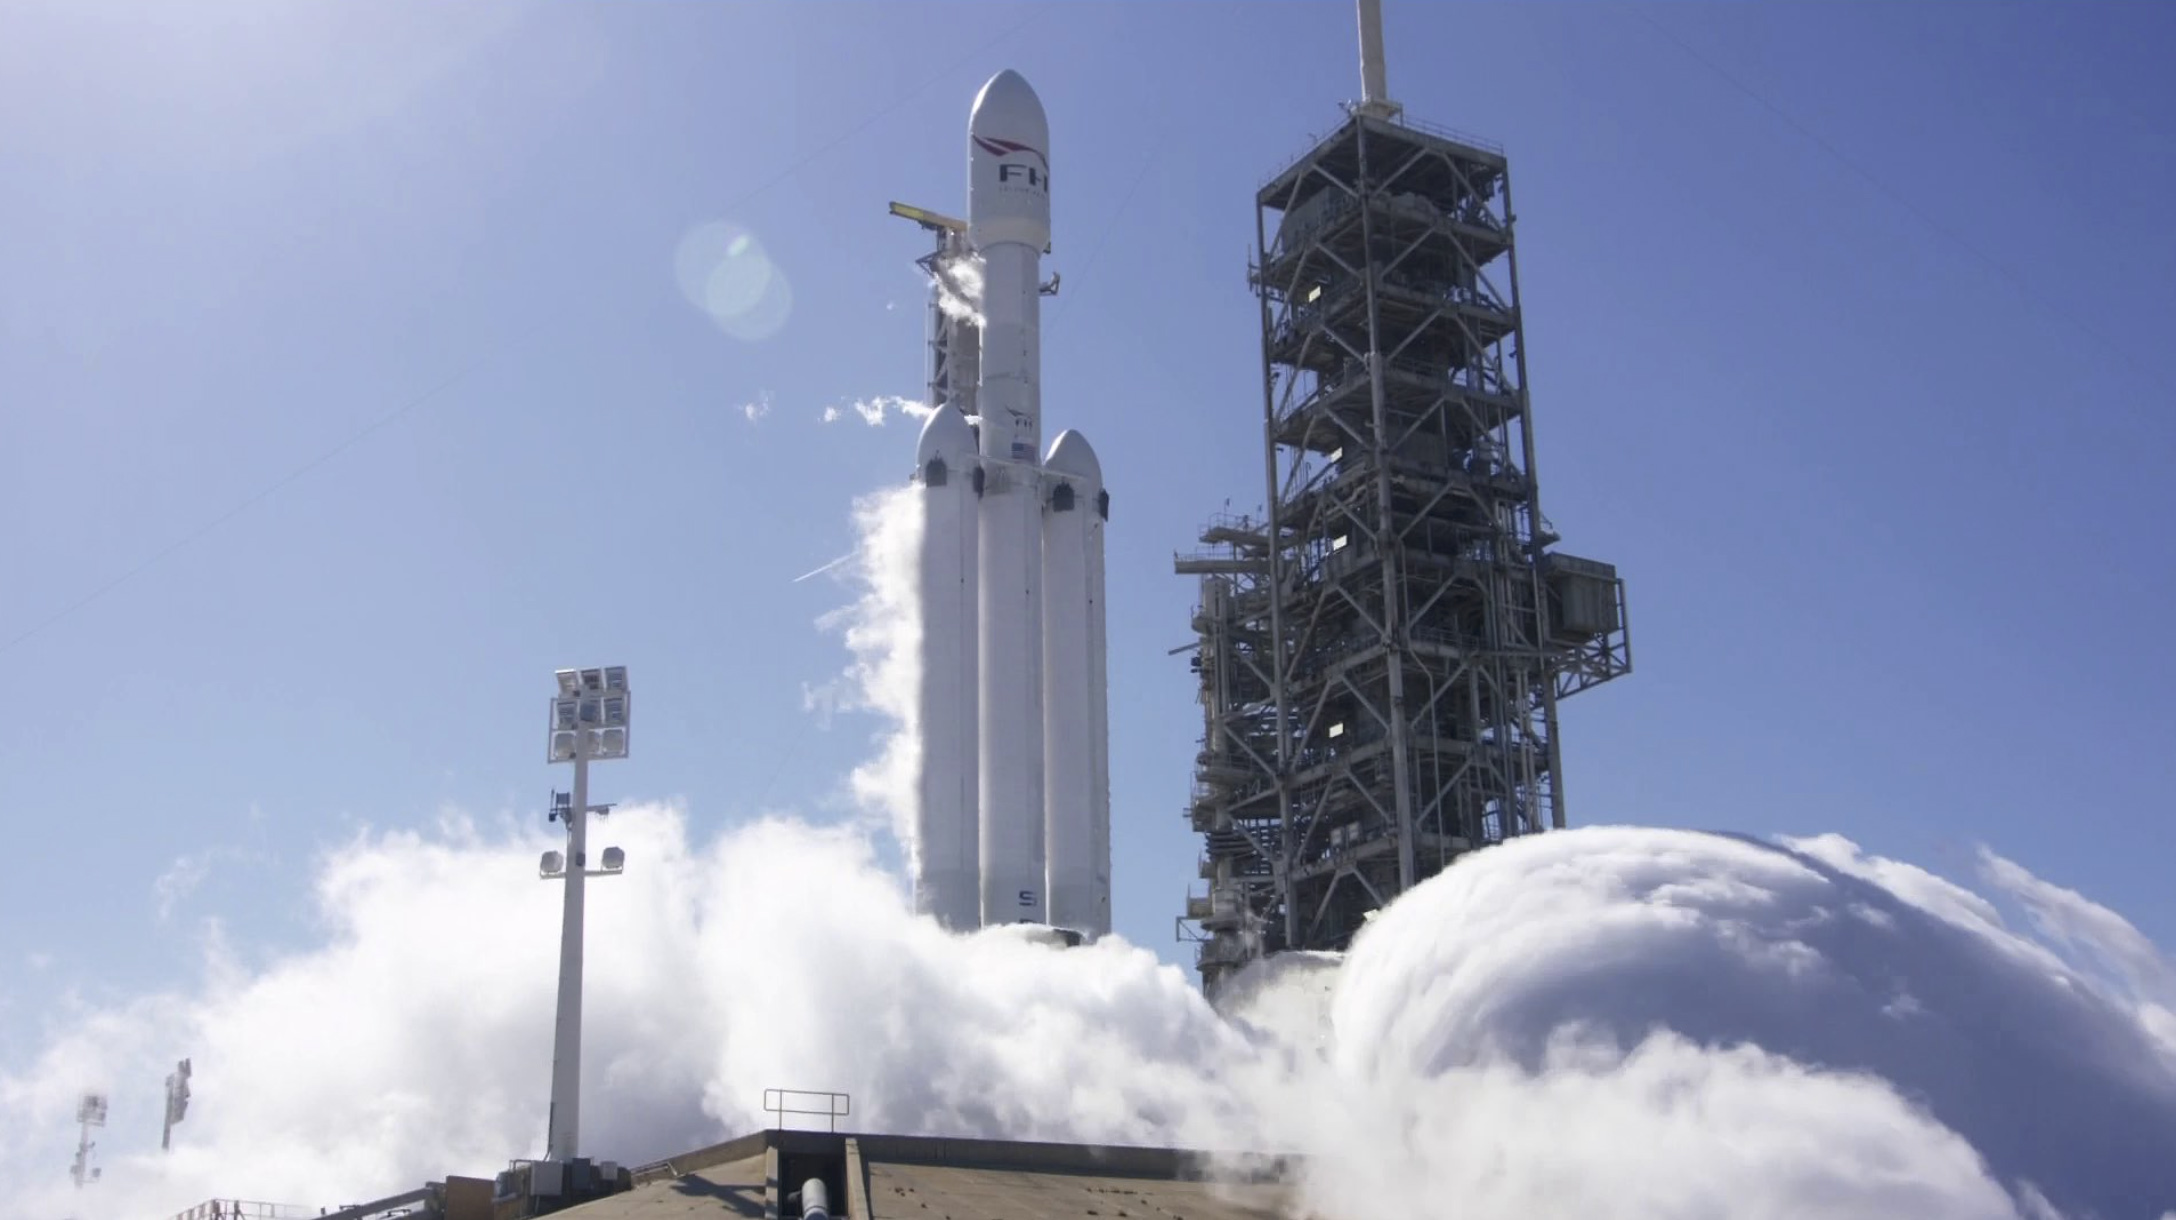 SpaceX's Falcon Heavy rocket may mean big savings for DoD